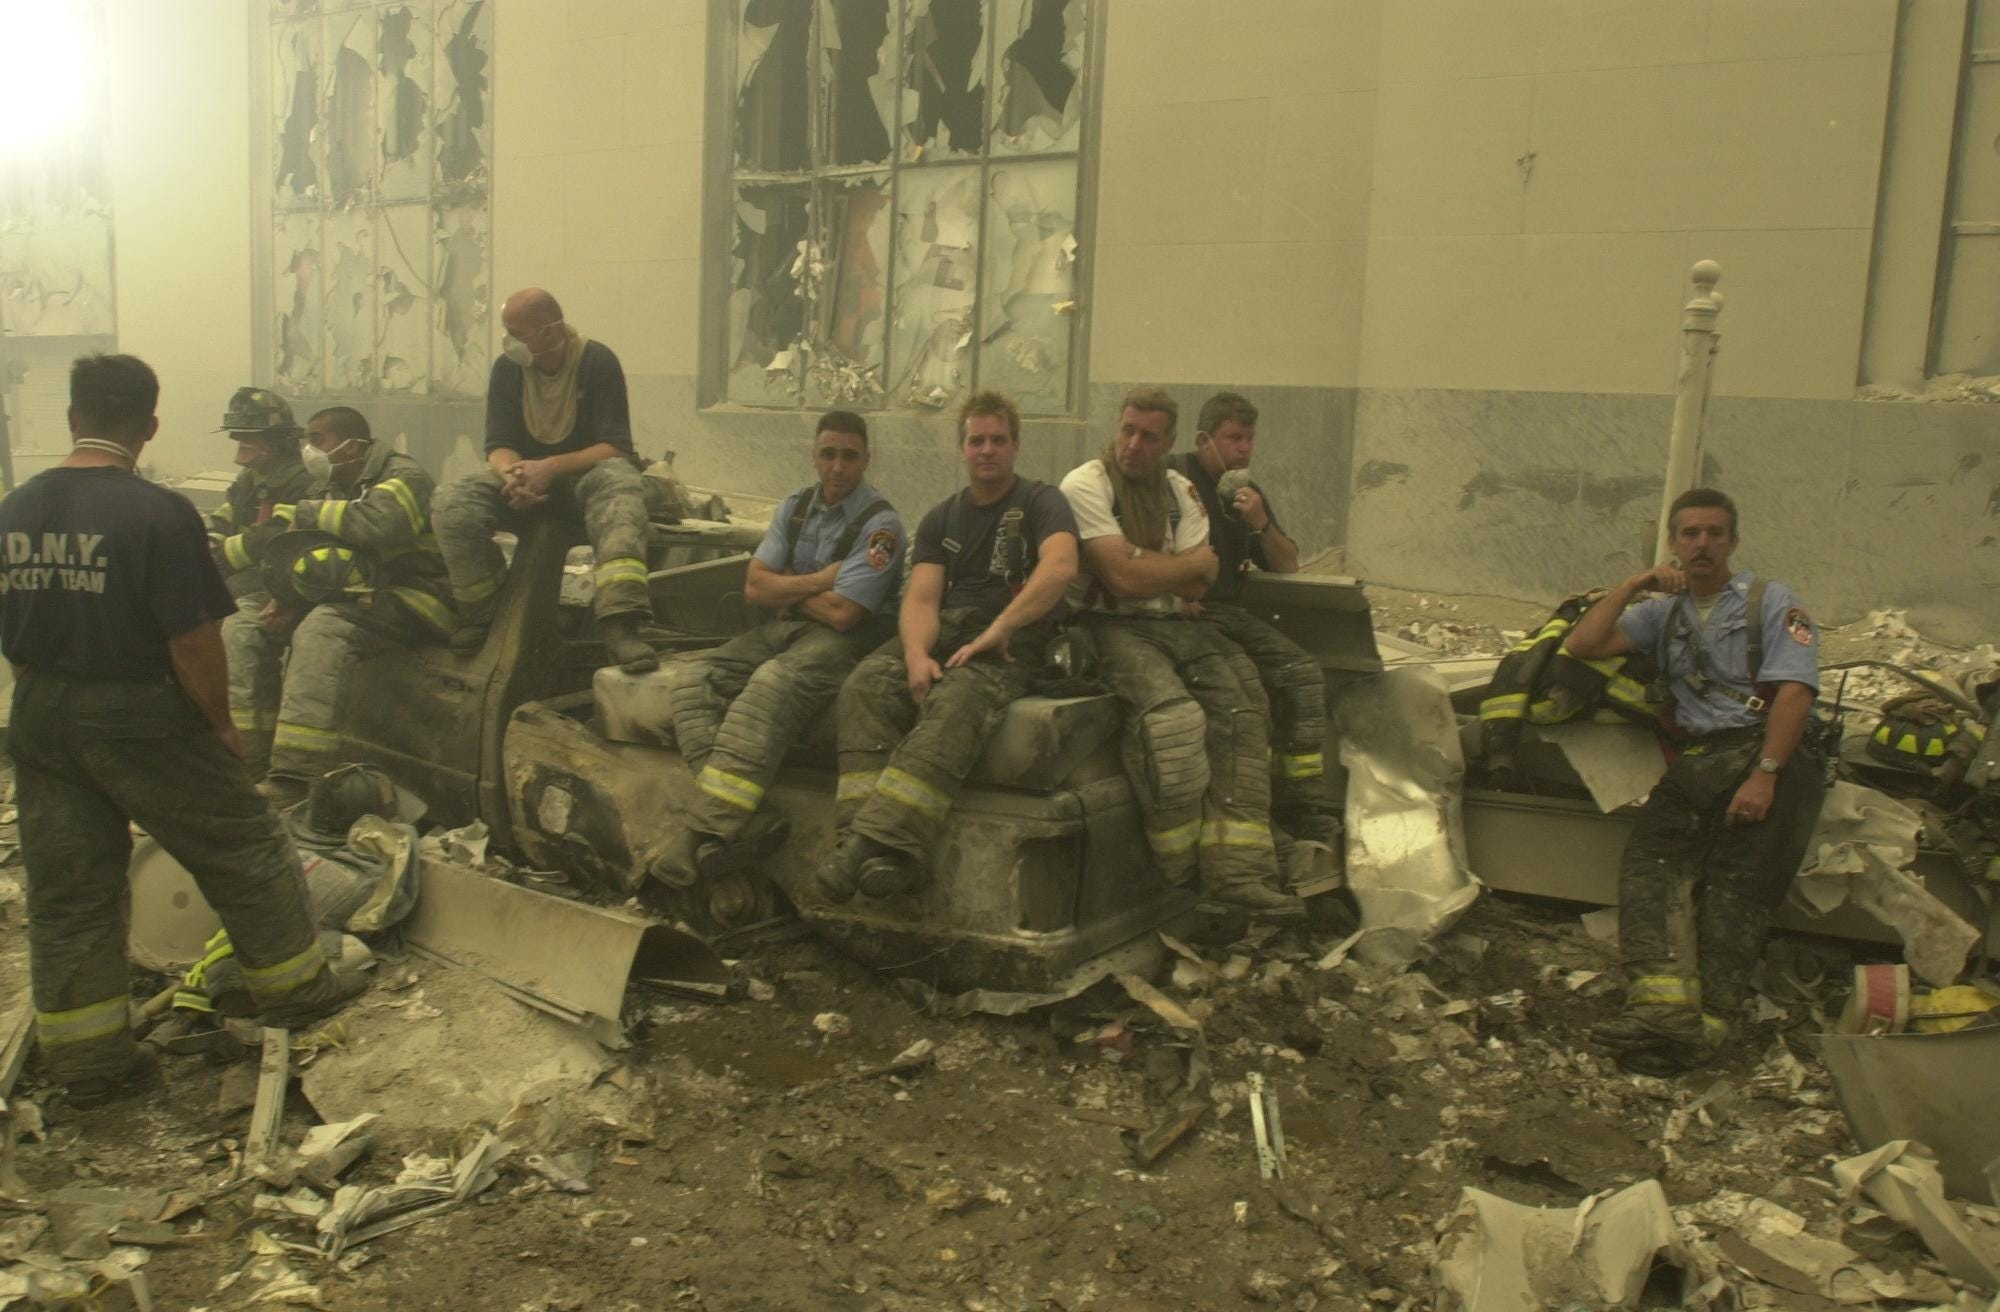 Retired NYPD officers: We dug through the World Trade Center rubble, looking for our brothers